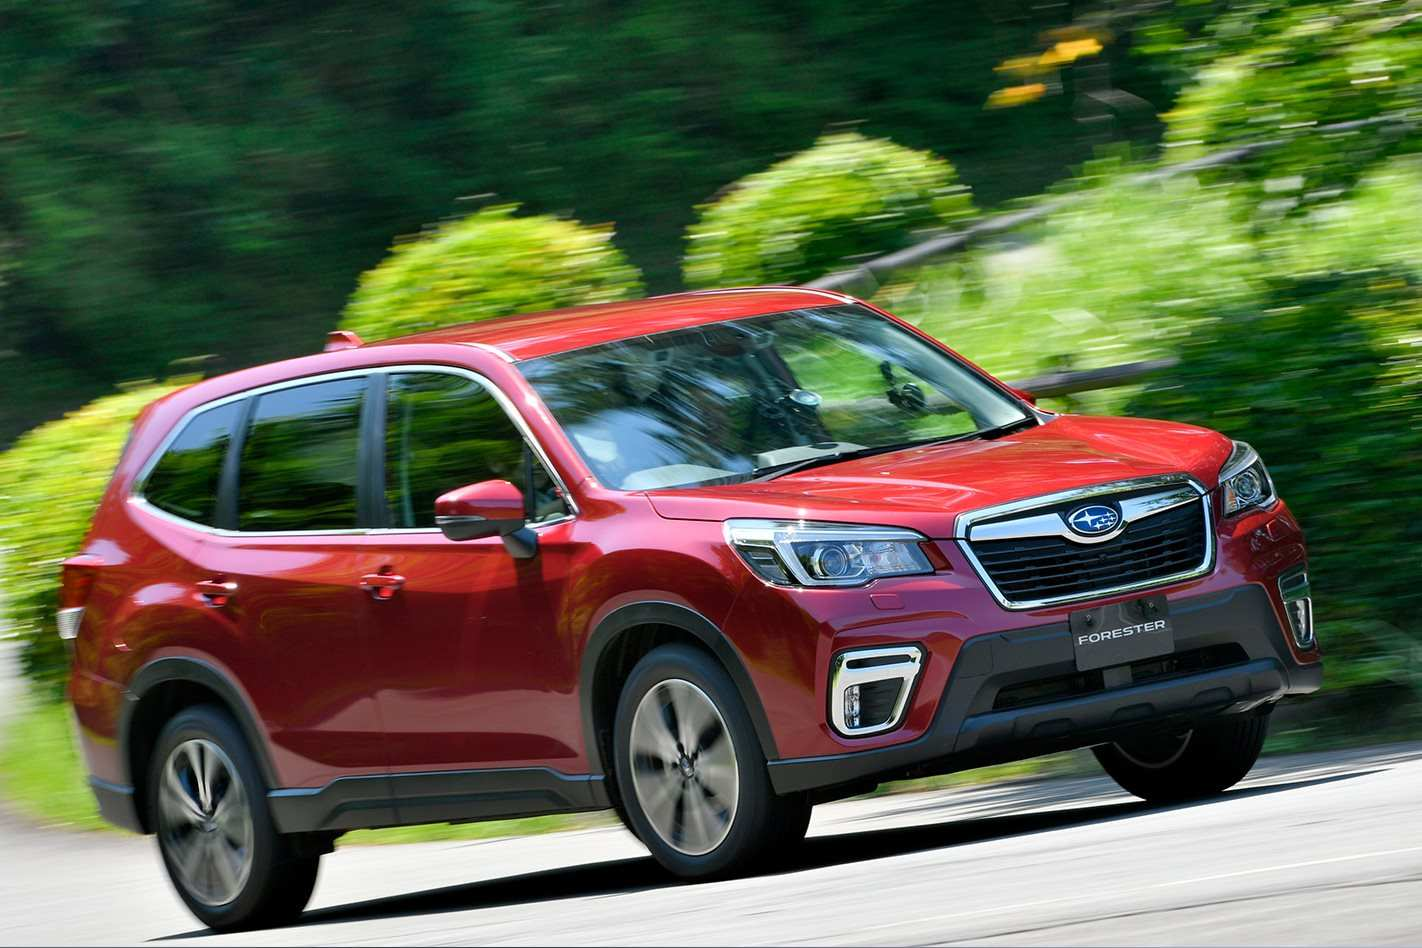 99 A Subaru Forester 2019 News Spy Shoot